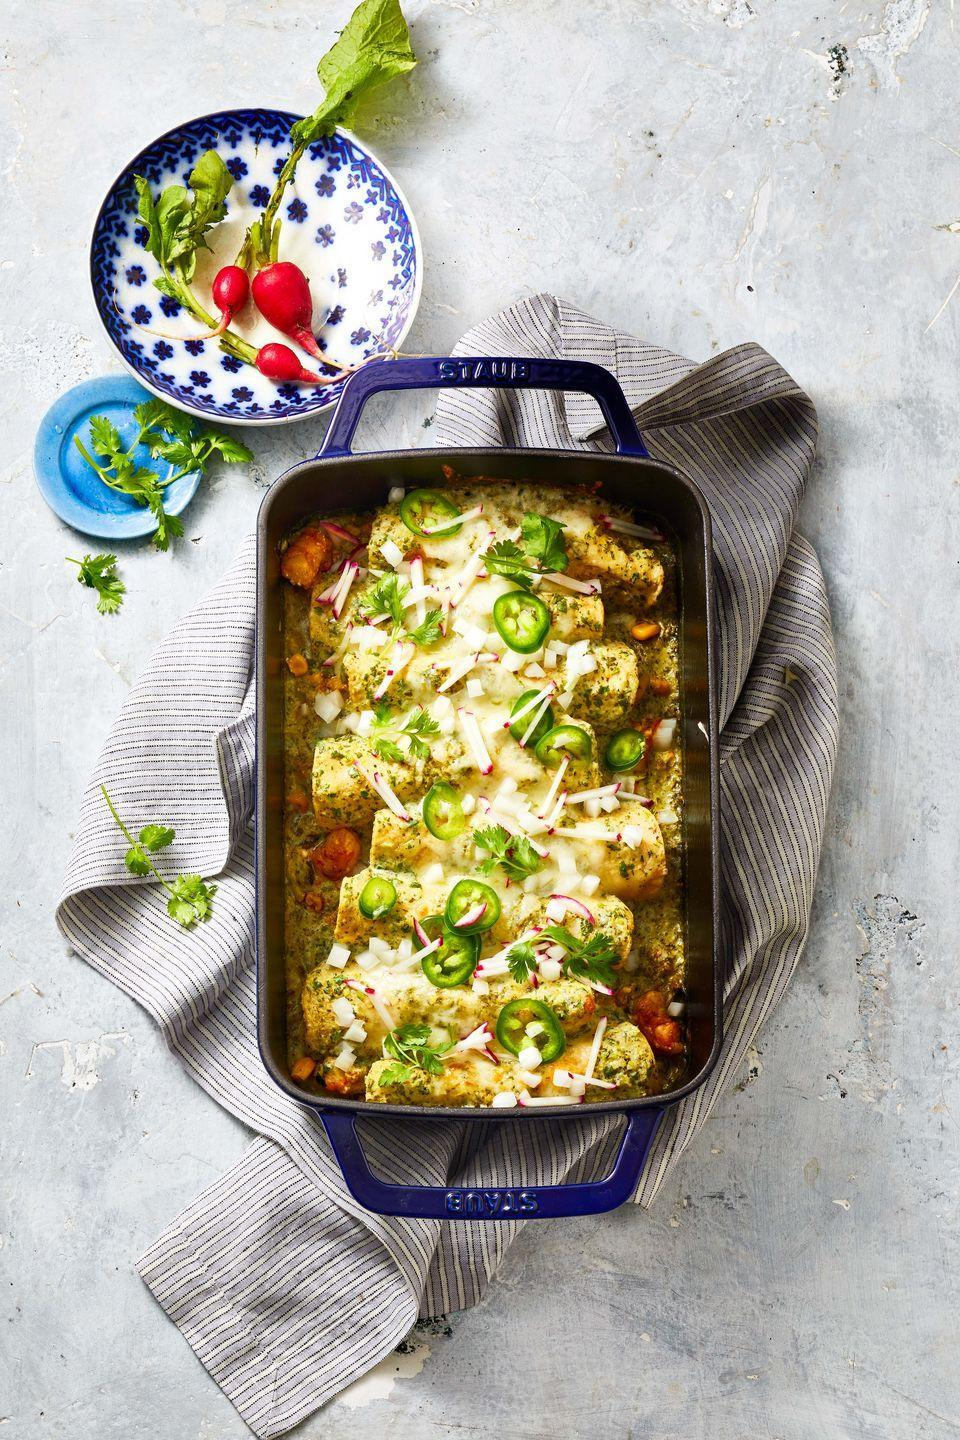 """<p>Make a quick enchilada sauce of store-bought salsa verde, cilantro and sour cream and you'll get this vibrant recipe on the table in under 40 minutes (really!).</p><p><em><a href=""""https://www.goodhousekeeping.com/food-recipes/a36323456/shrimp-zucchini-and-corn-enchiladas-recipe/"""" rel=""""nofollow noopener"""" target=""""_blank"""" data-ylk=""""slk:Get the recipe for Shrimp Enchiladas With Zucchini and Corn »"""" class=""""link rapid-noclick-resp"""">Get the recipe for Shrimp Enchiladas With Zucchini and Corn »</a></em></p>"""